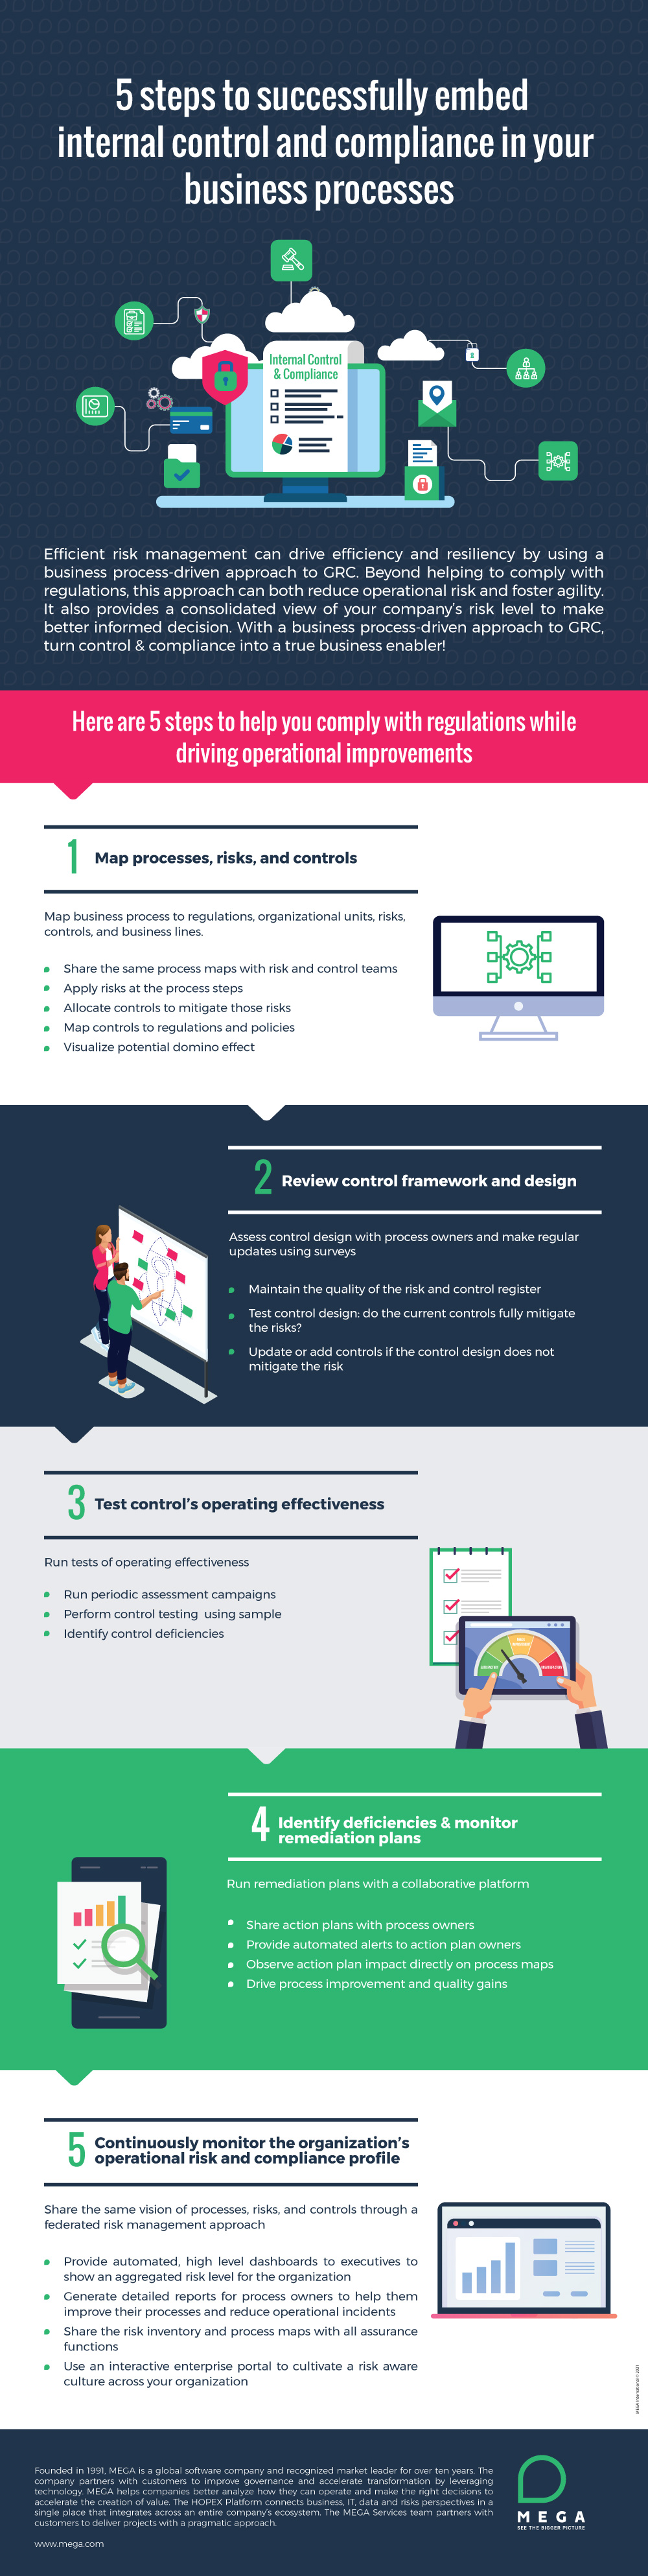 5 steps to successfully manage regulatory compliance